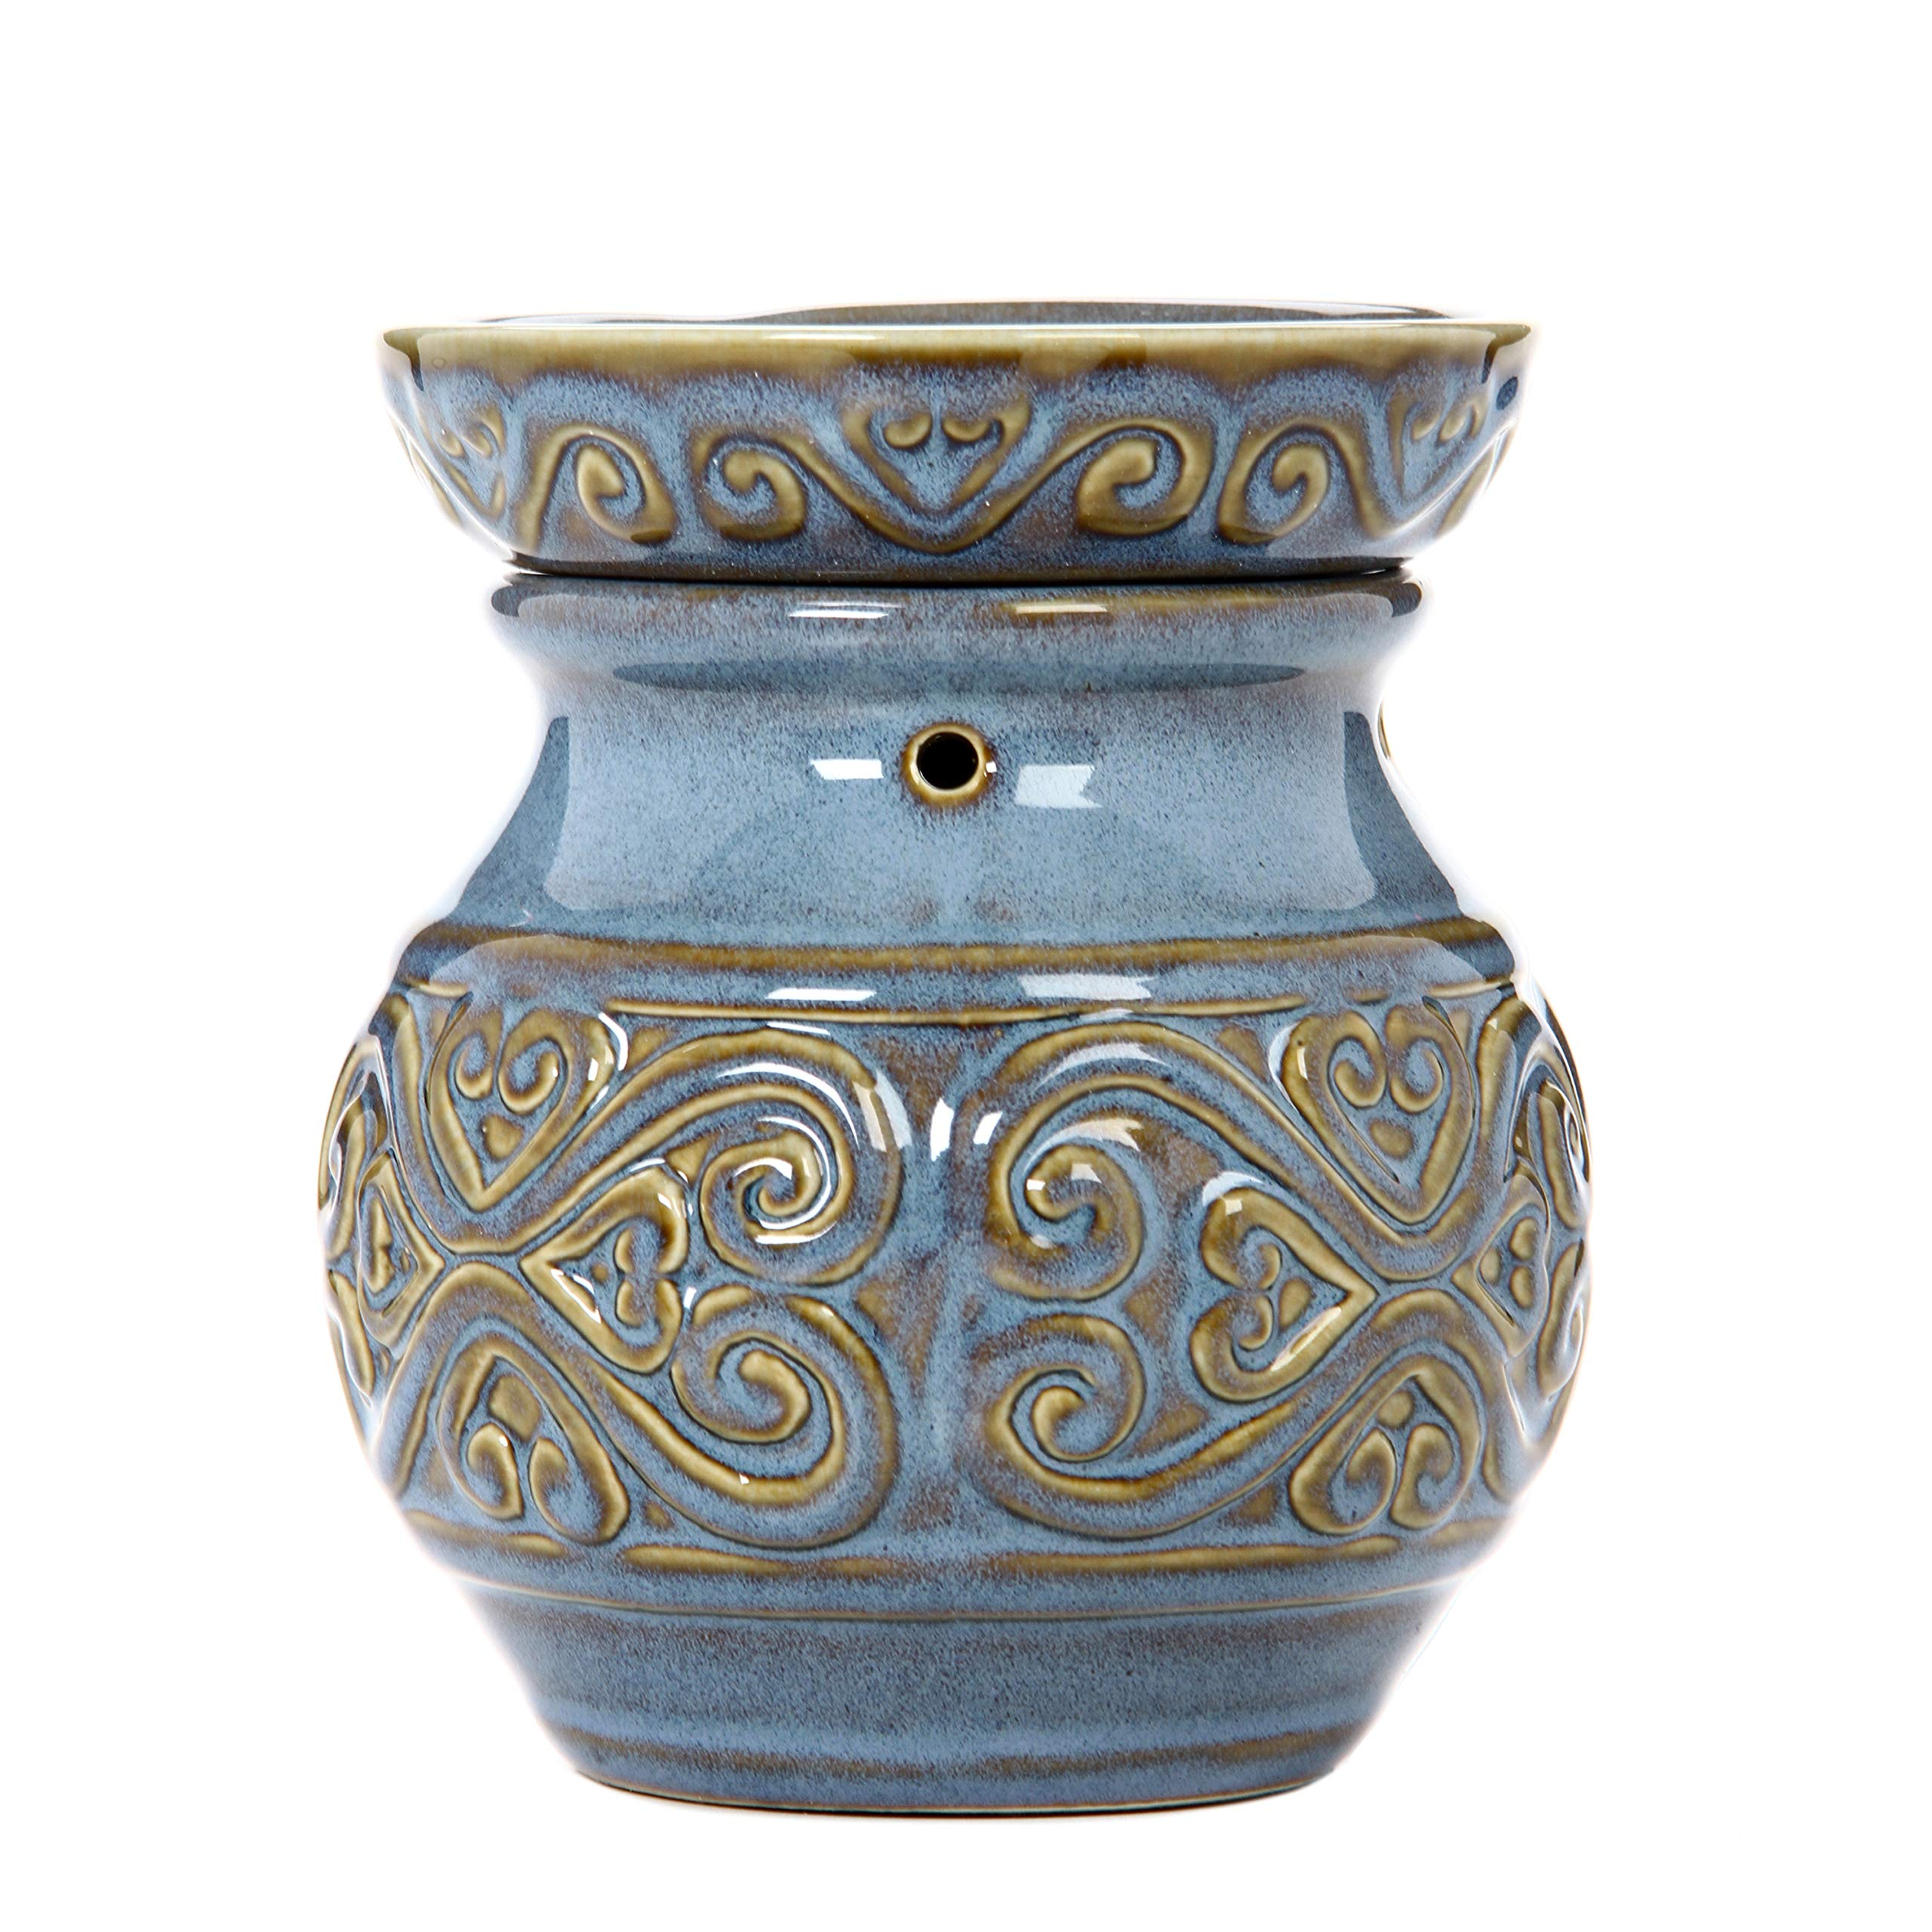 Hosley 6 High Blue Ceramic Electric Warmer. Ideal Gift for Wedding Spa Aromatherapy. Use Brand Wax Melts Cubes Essential Oils and Fragrance Oils. O4 by Hosley